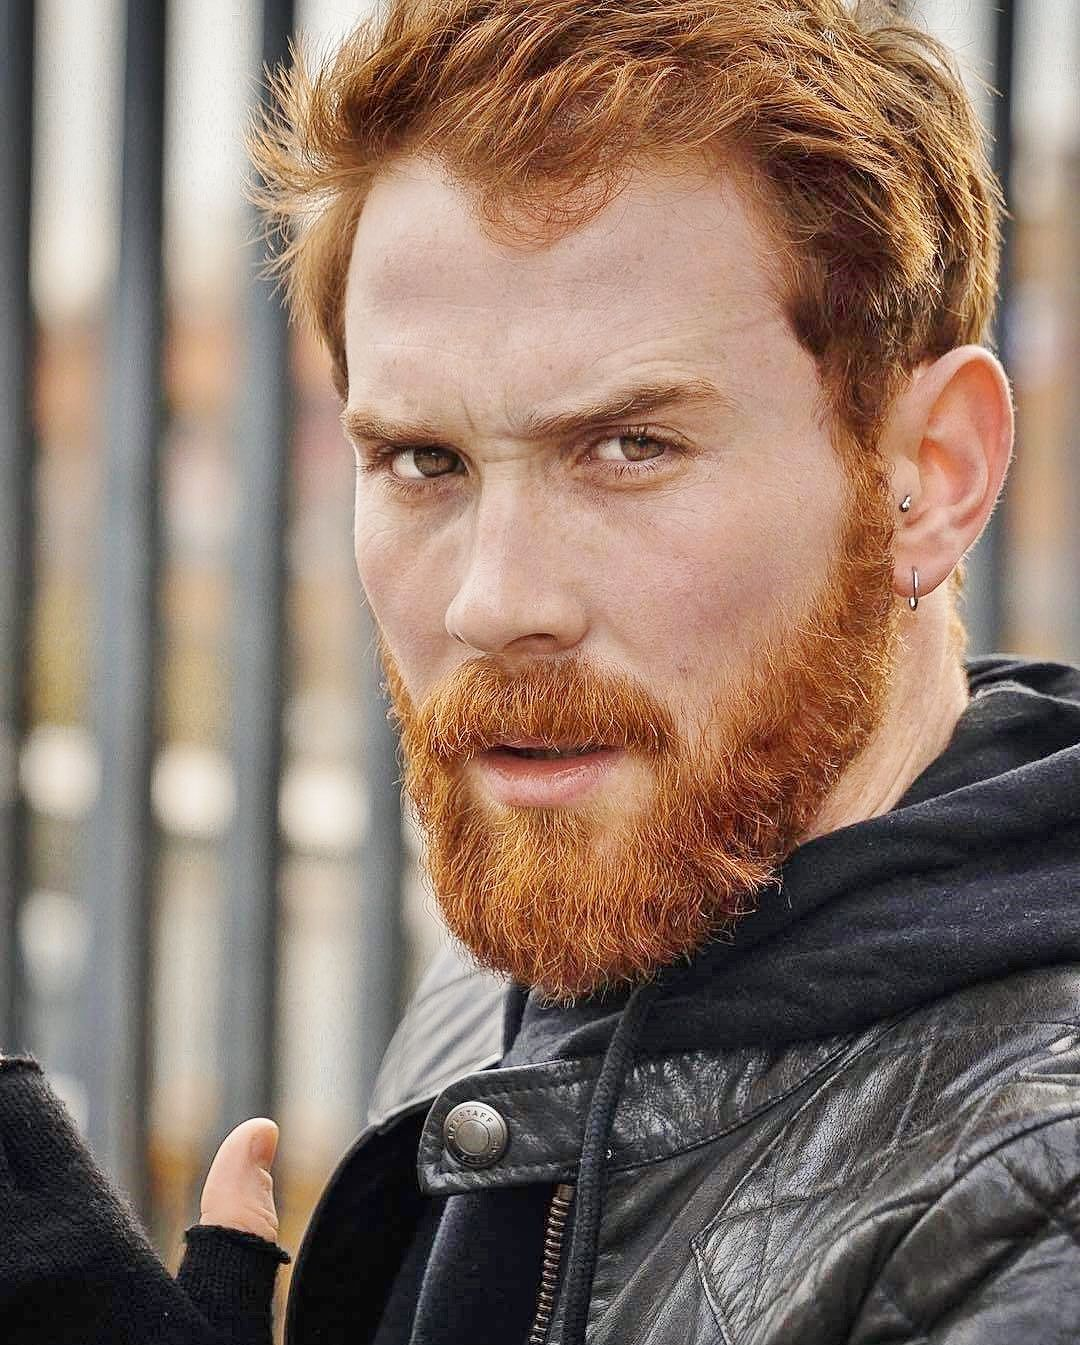 Local redhead with beard pissing date